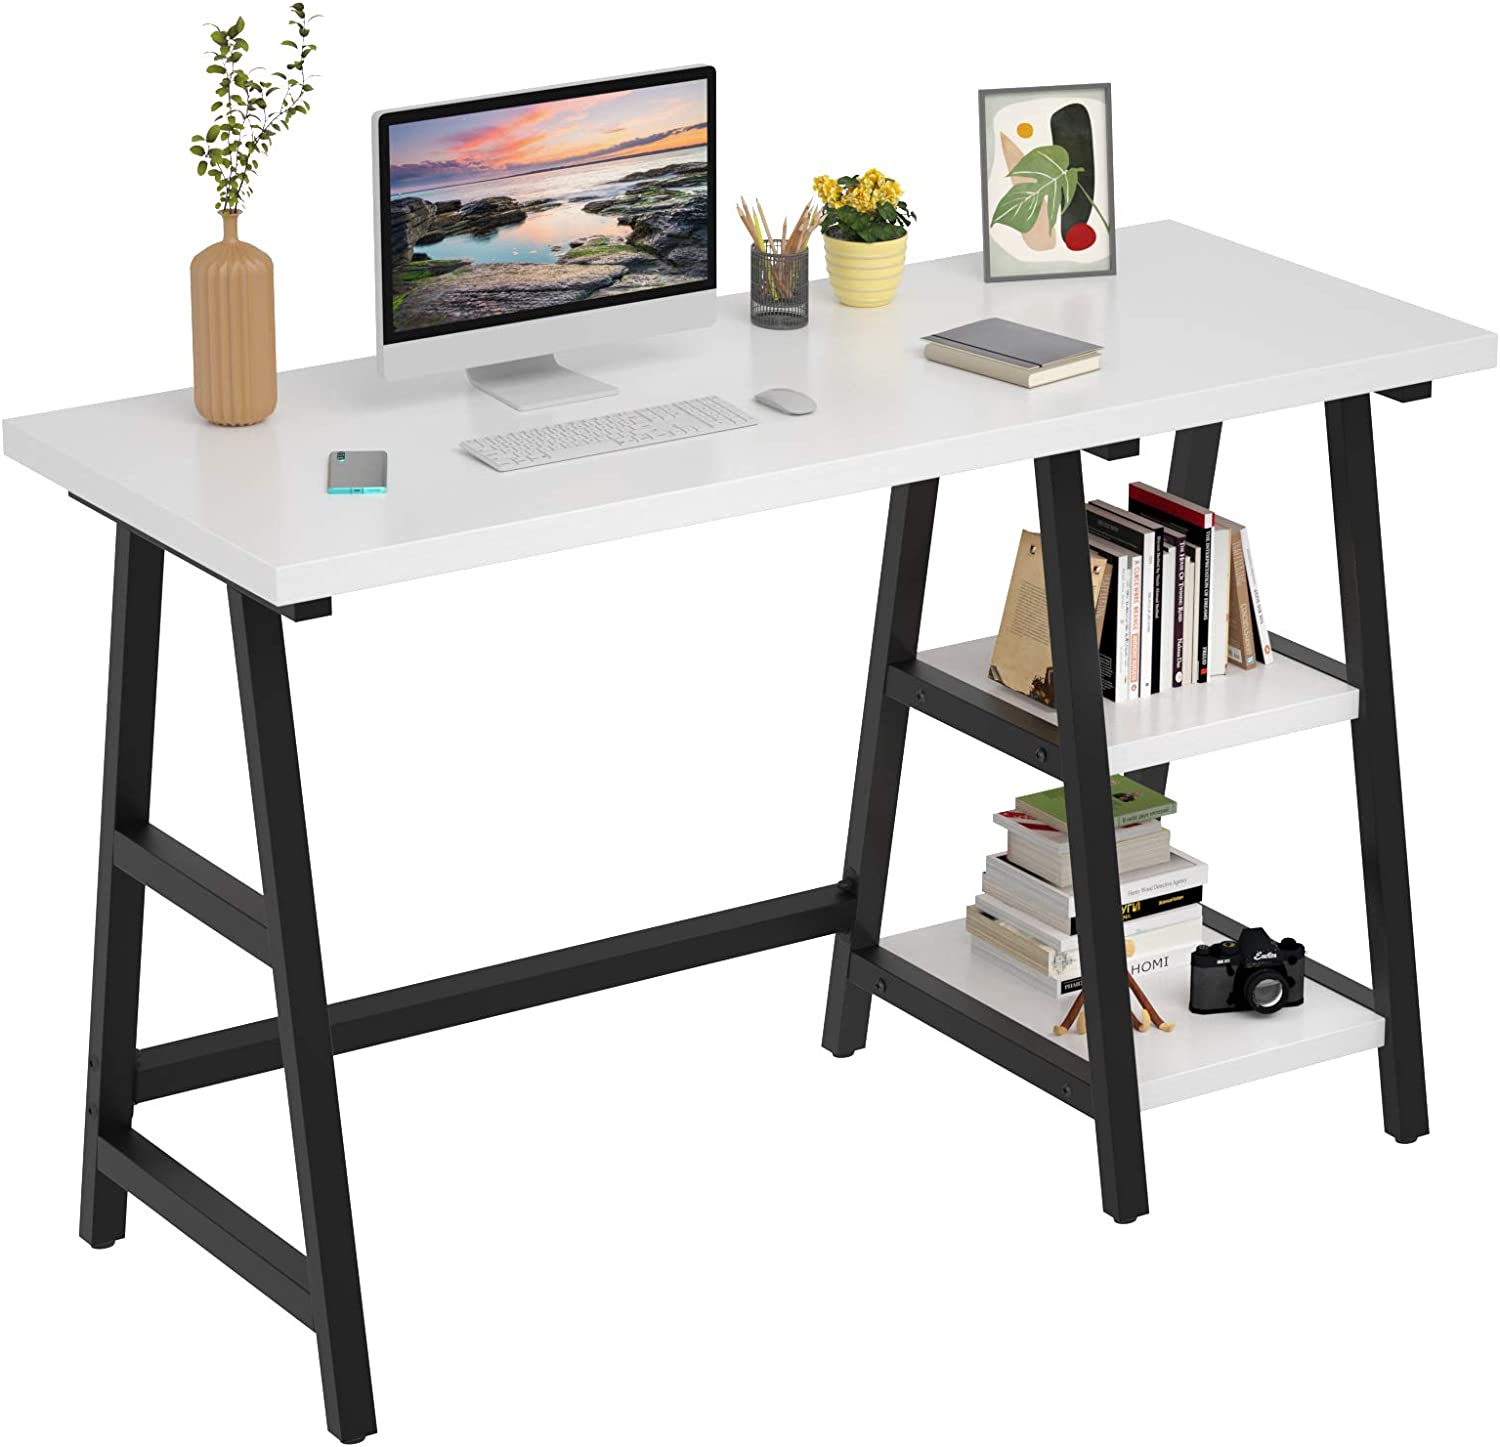 Foxemart Computer Desk 47 25% OFF Inch Office Home Study Writing lowest price Trestle